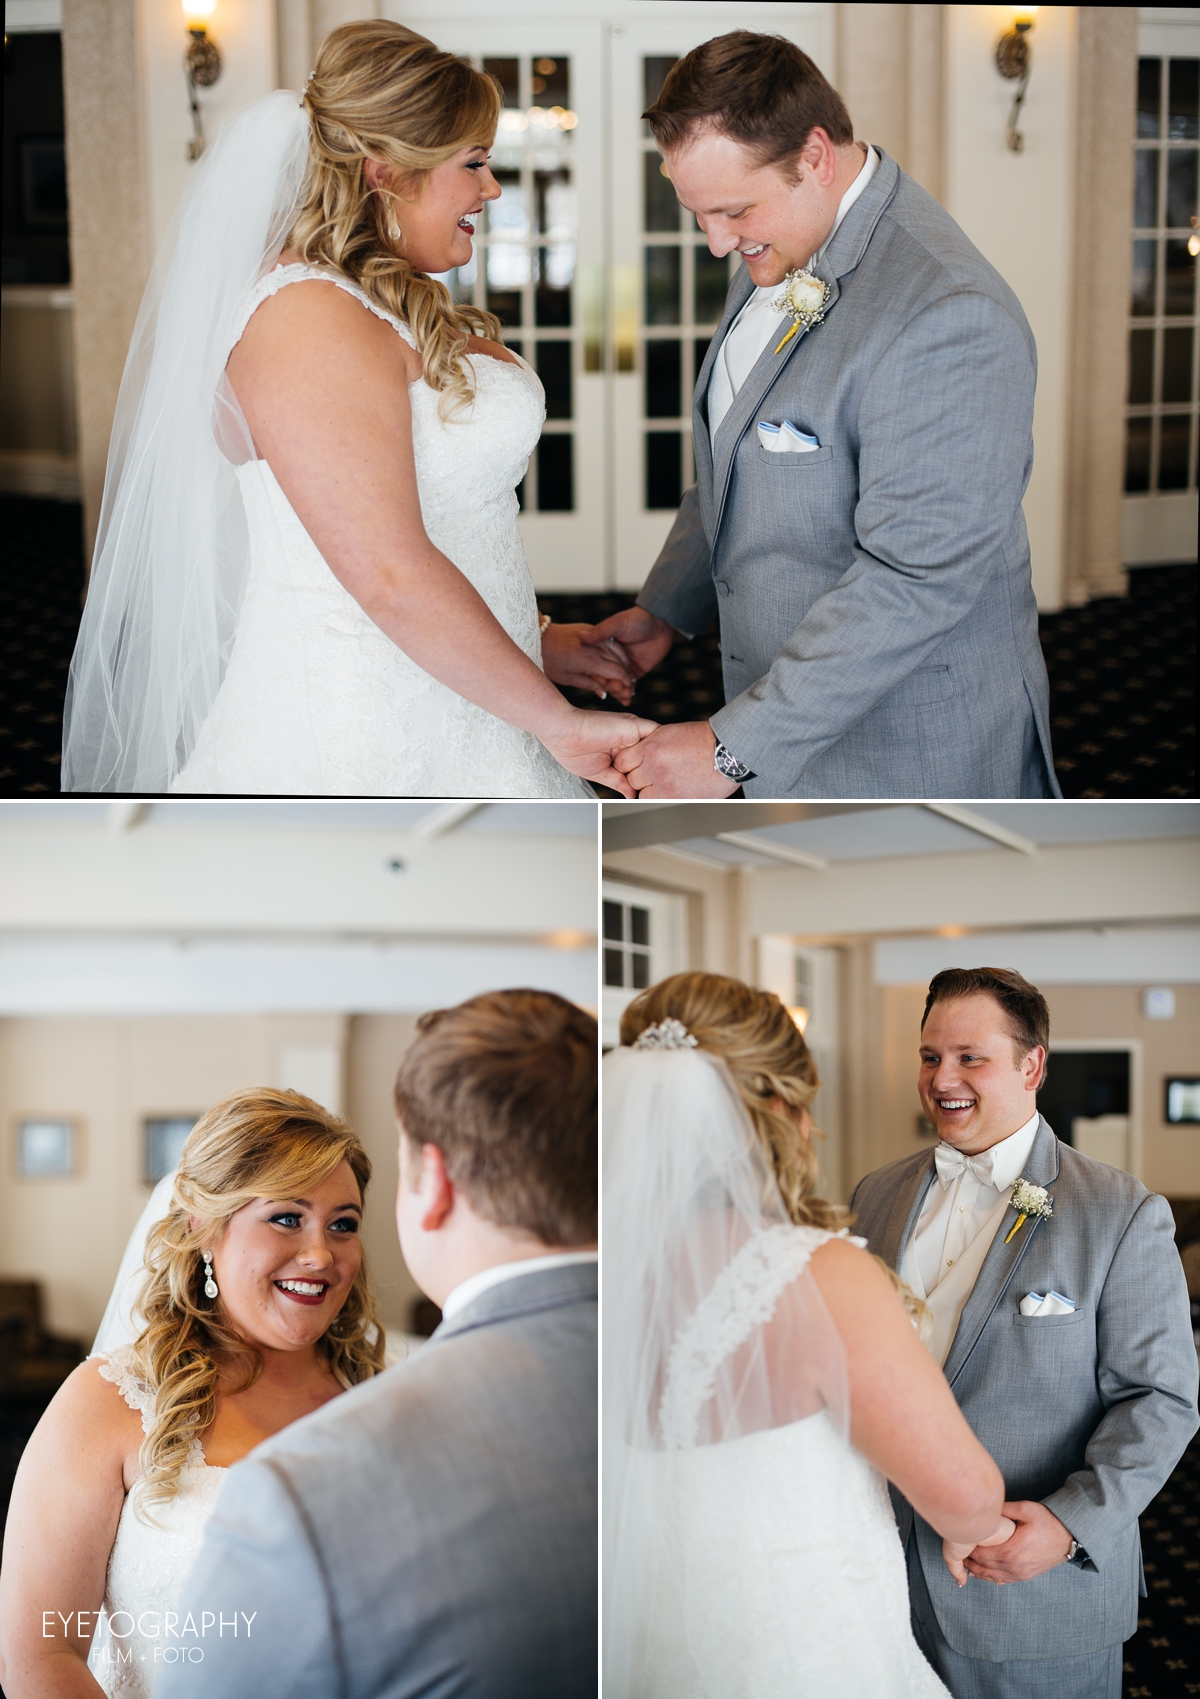 Minneapolis Golf Club Wedding Photography - Alex + Jordan 10